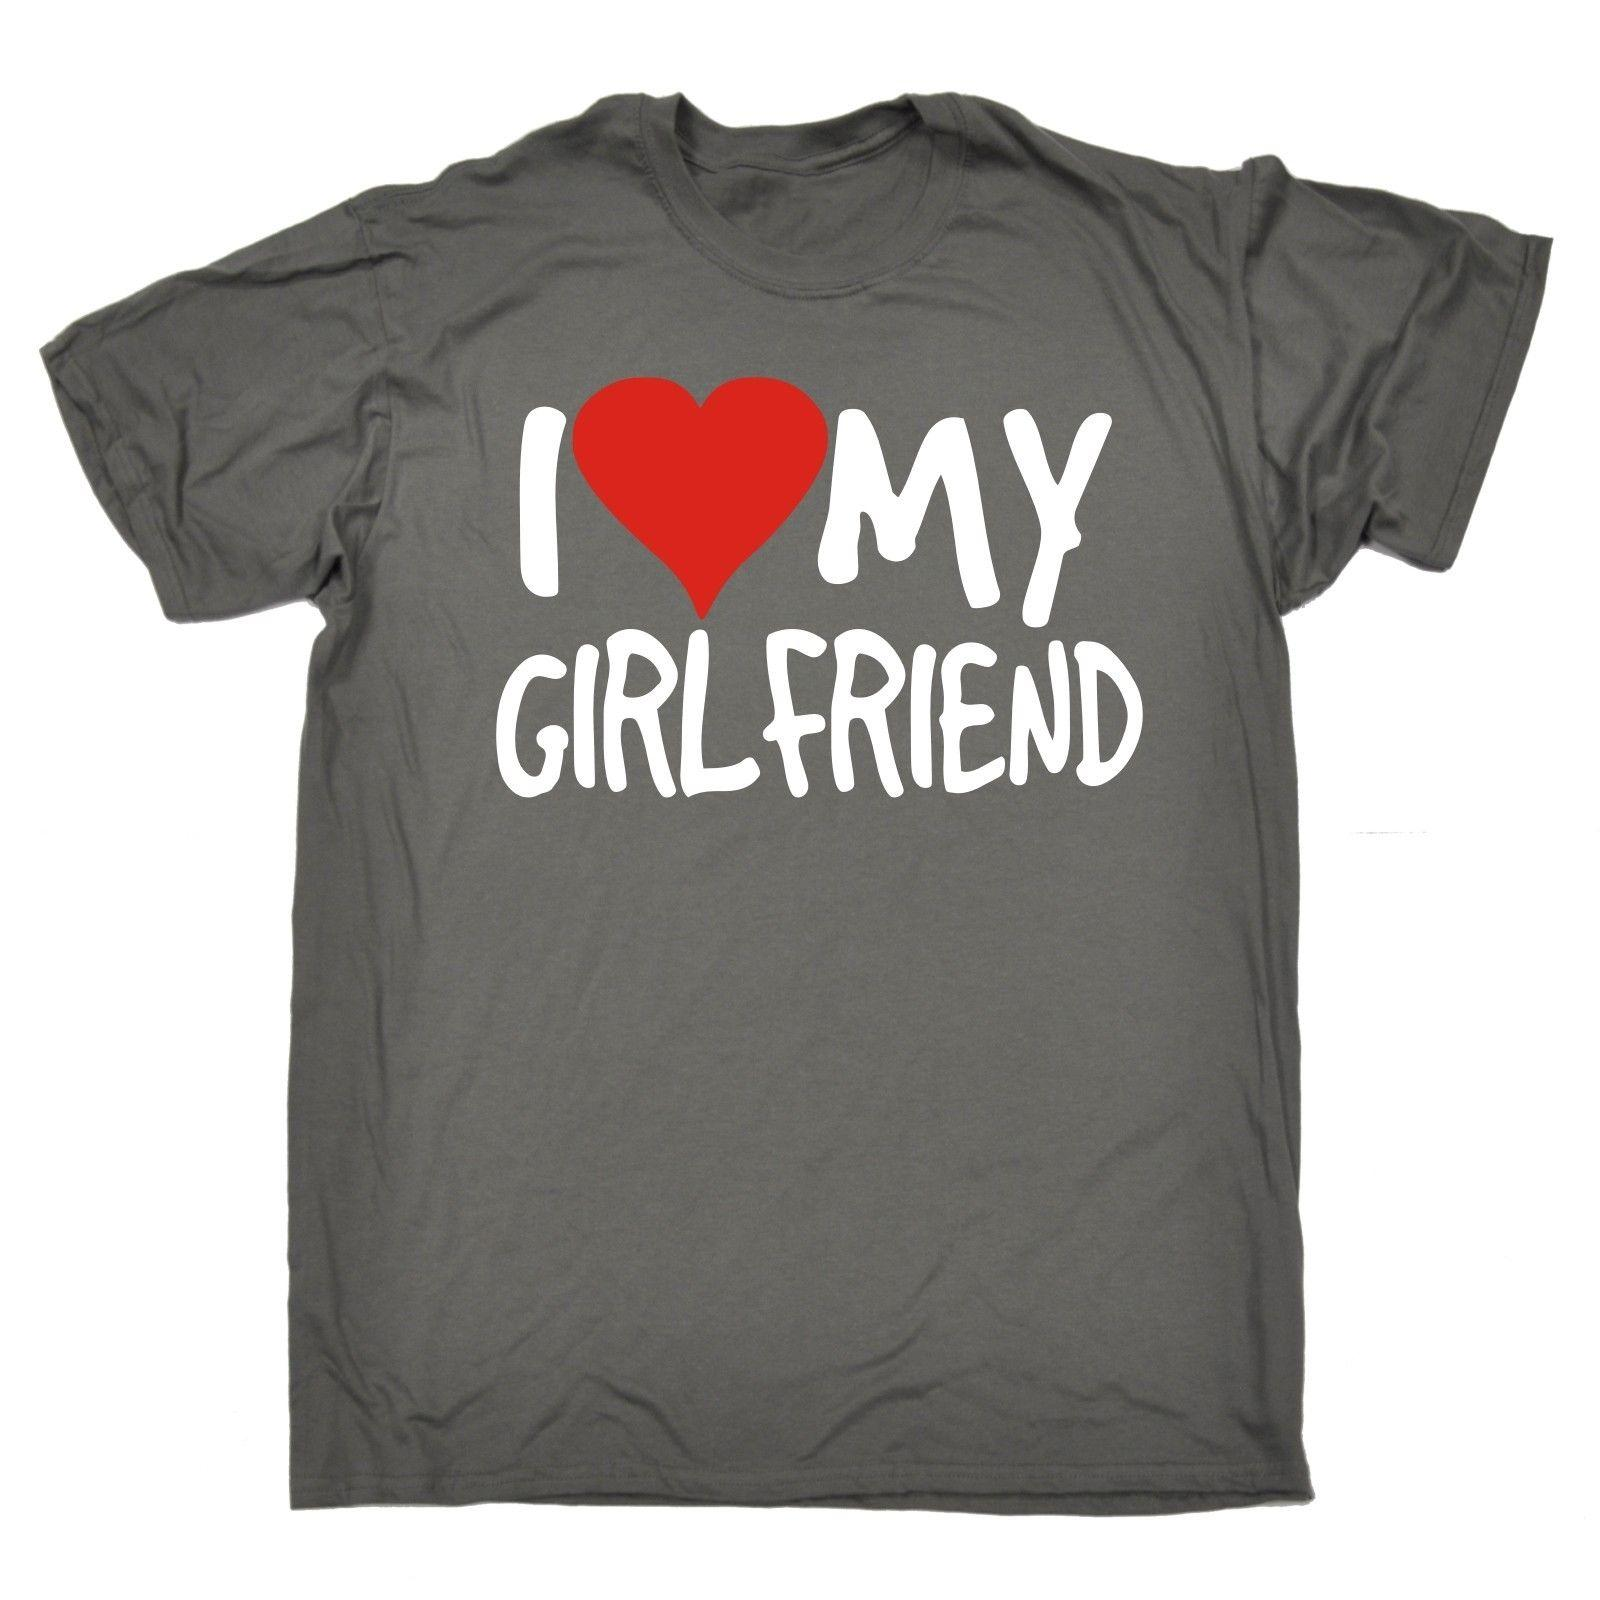 Funny Mens T Shirts Love My Girlfriend SHIRT Boyfriend Dating Present Birthday Cool Designs Pt From Brawtees 1101